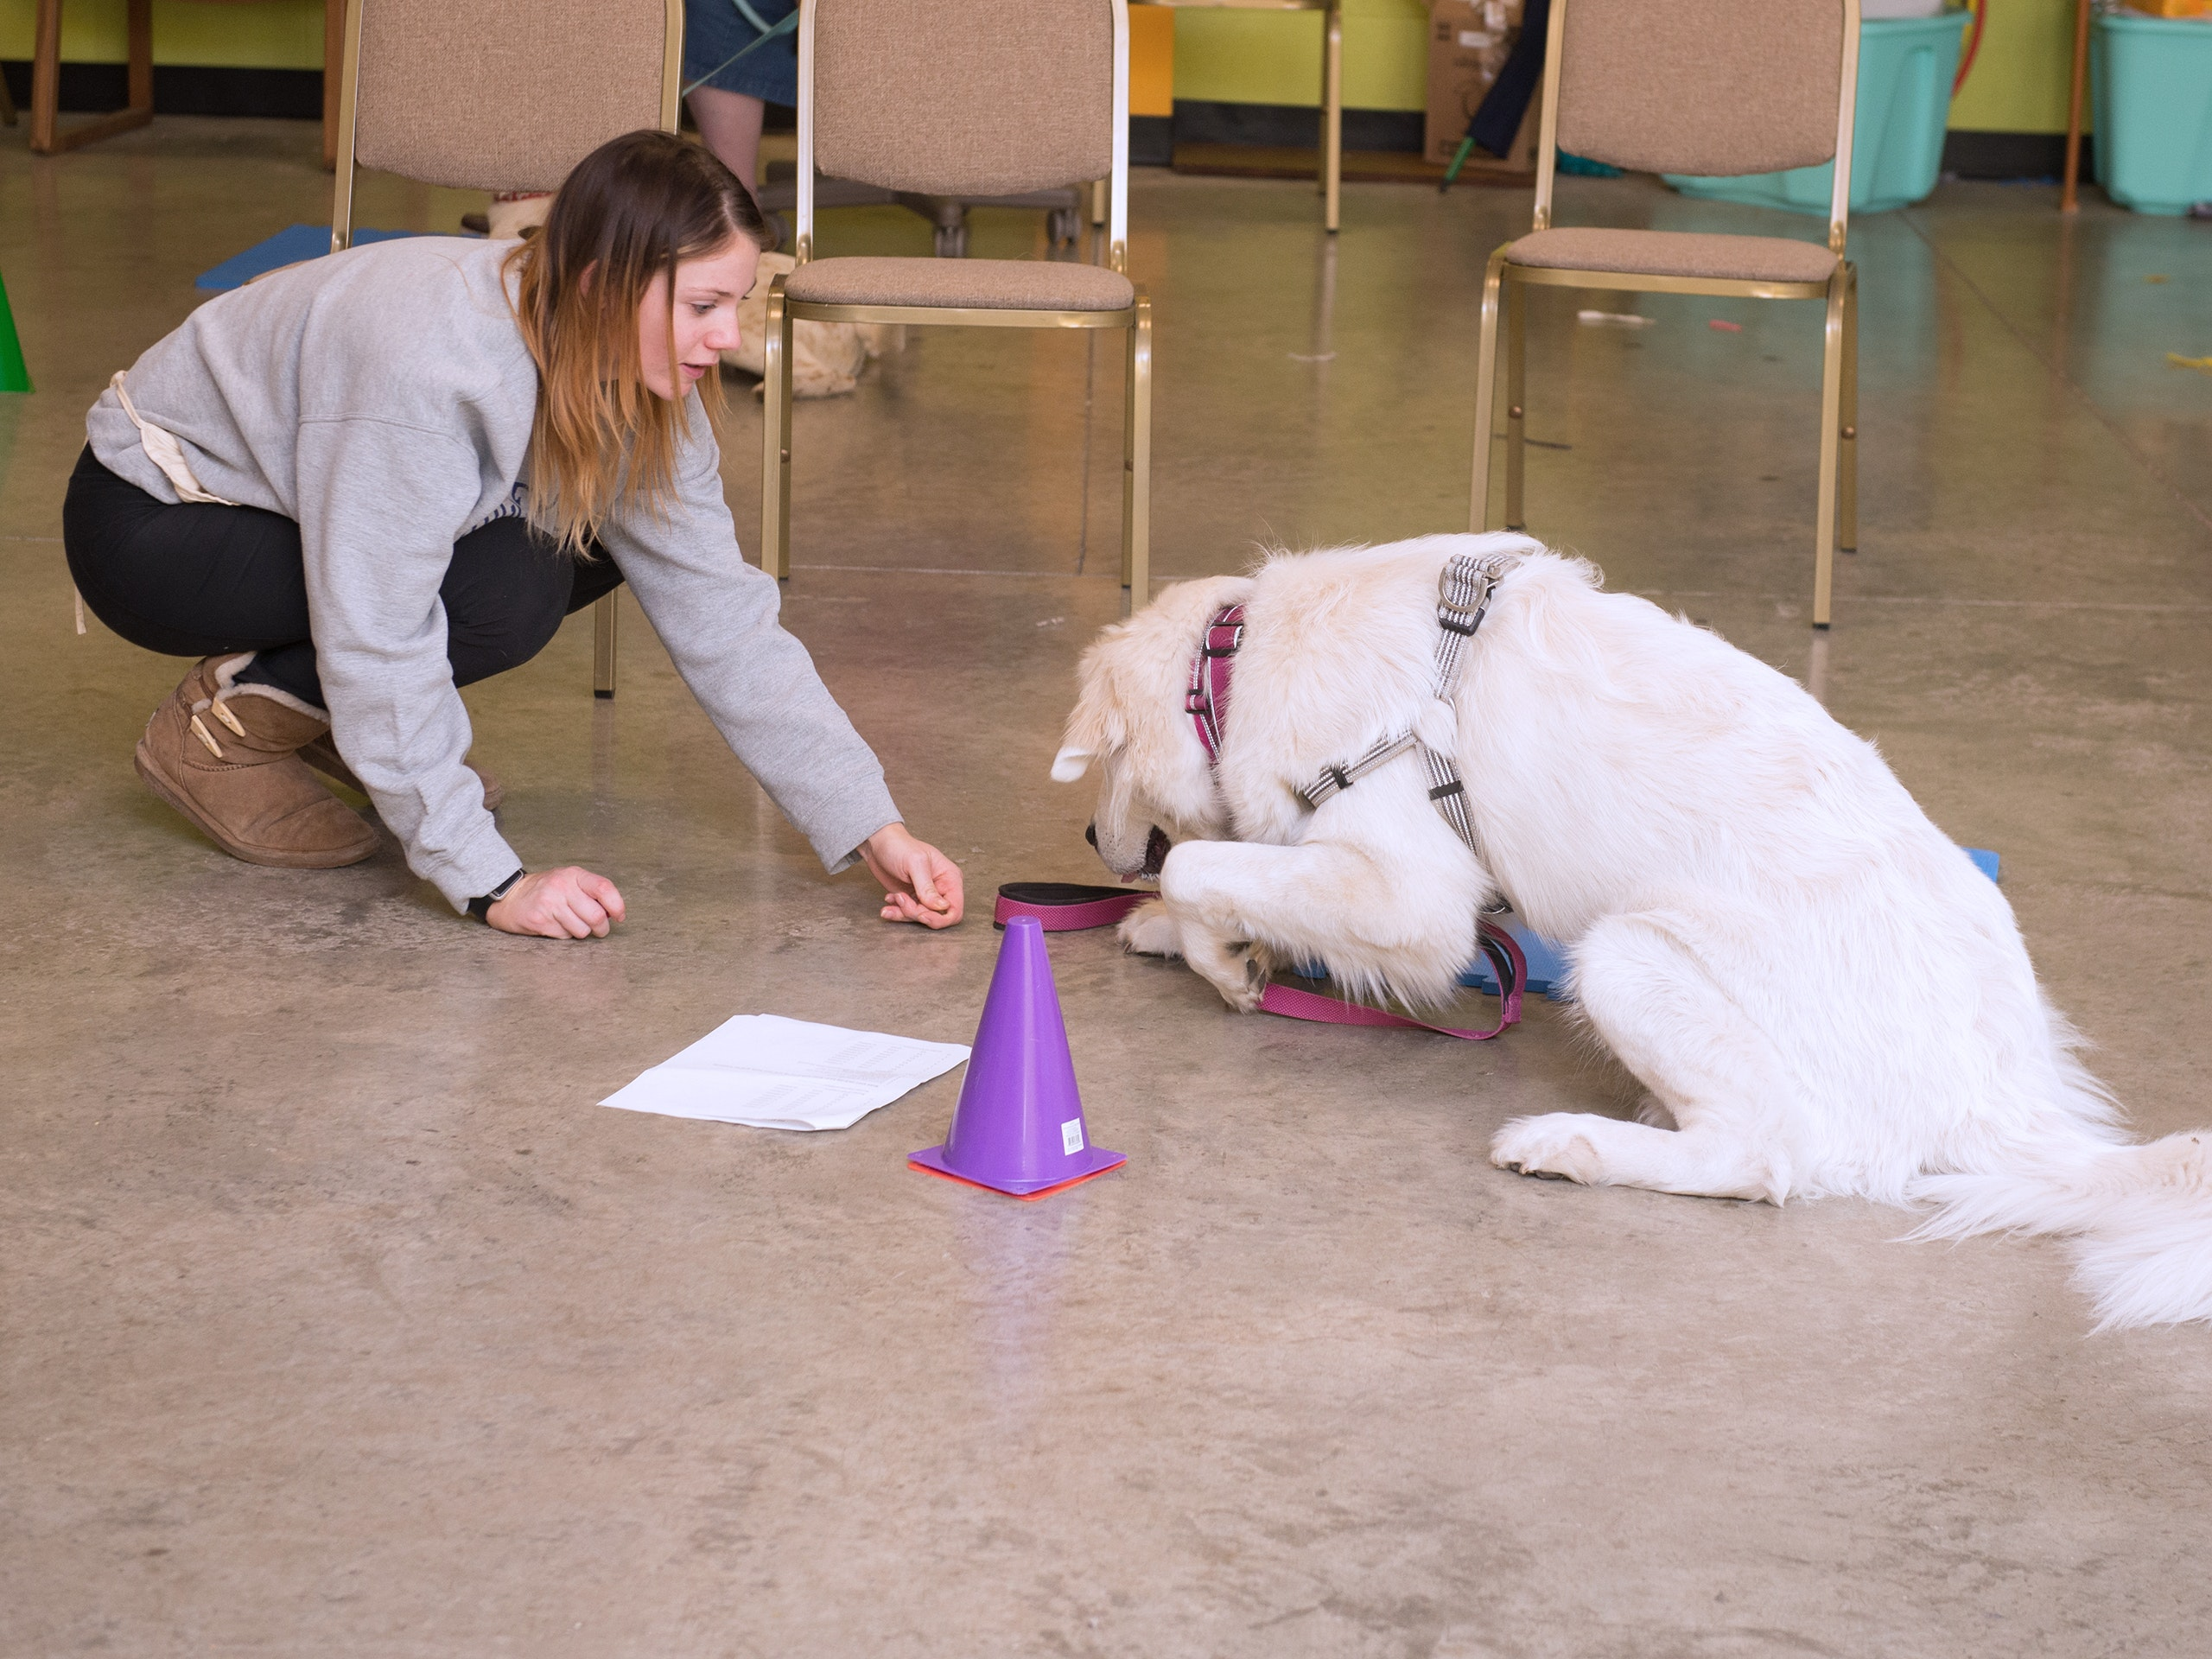 Female student presenting a treat to a dog during a training exercise.